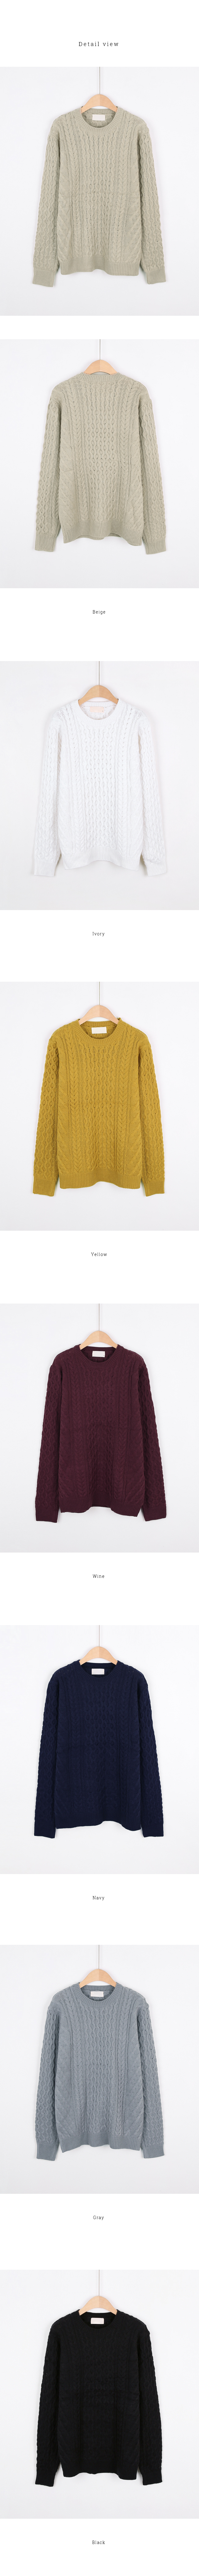 Bold twisted round neck knit